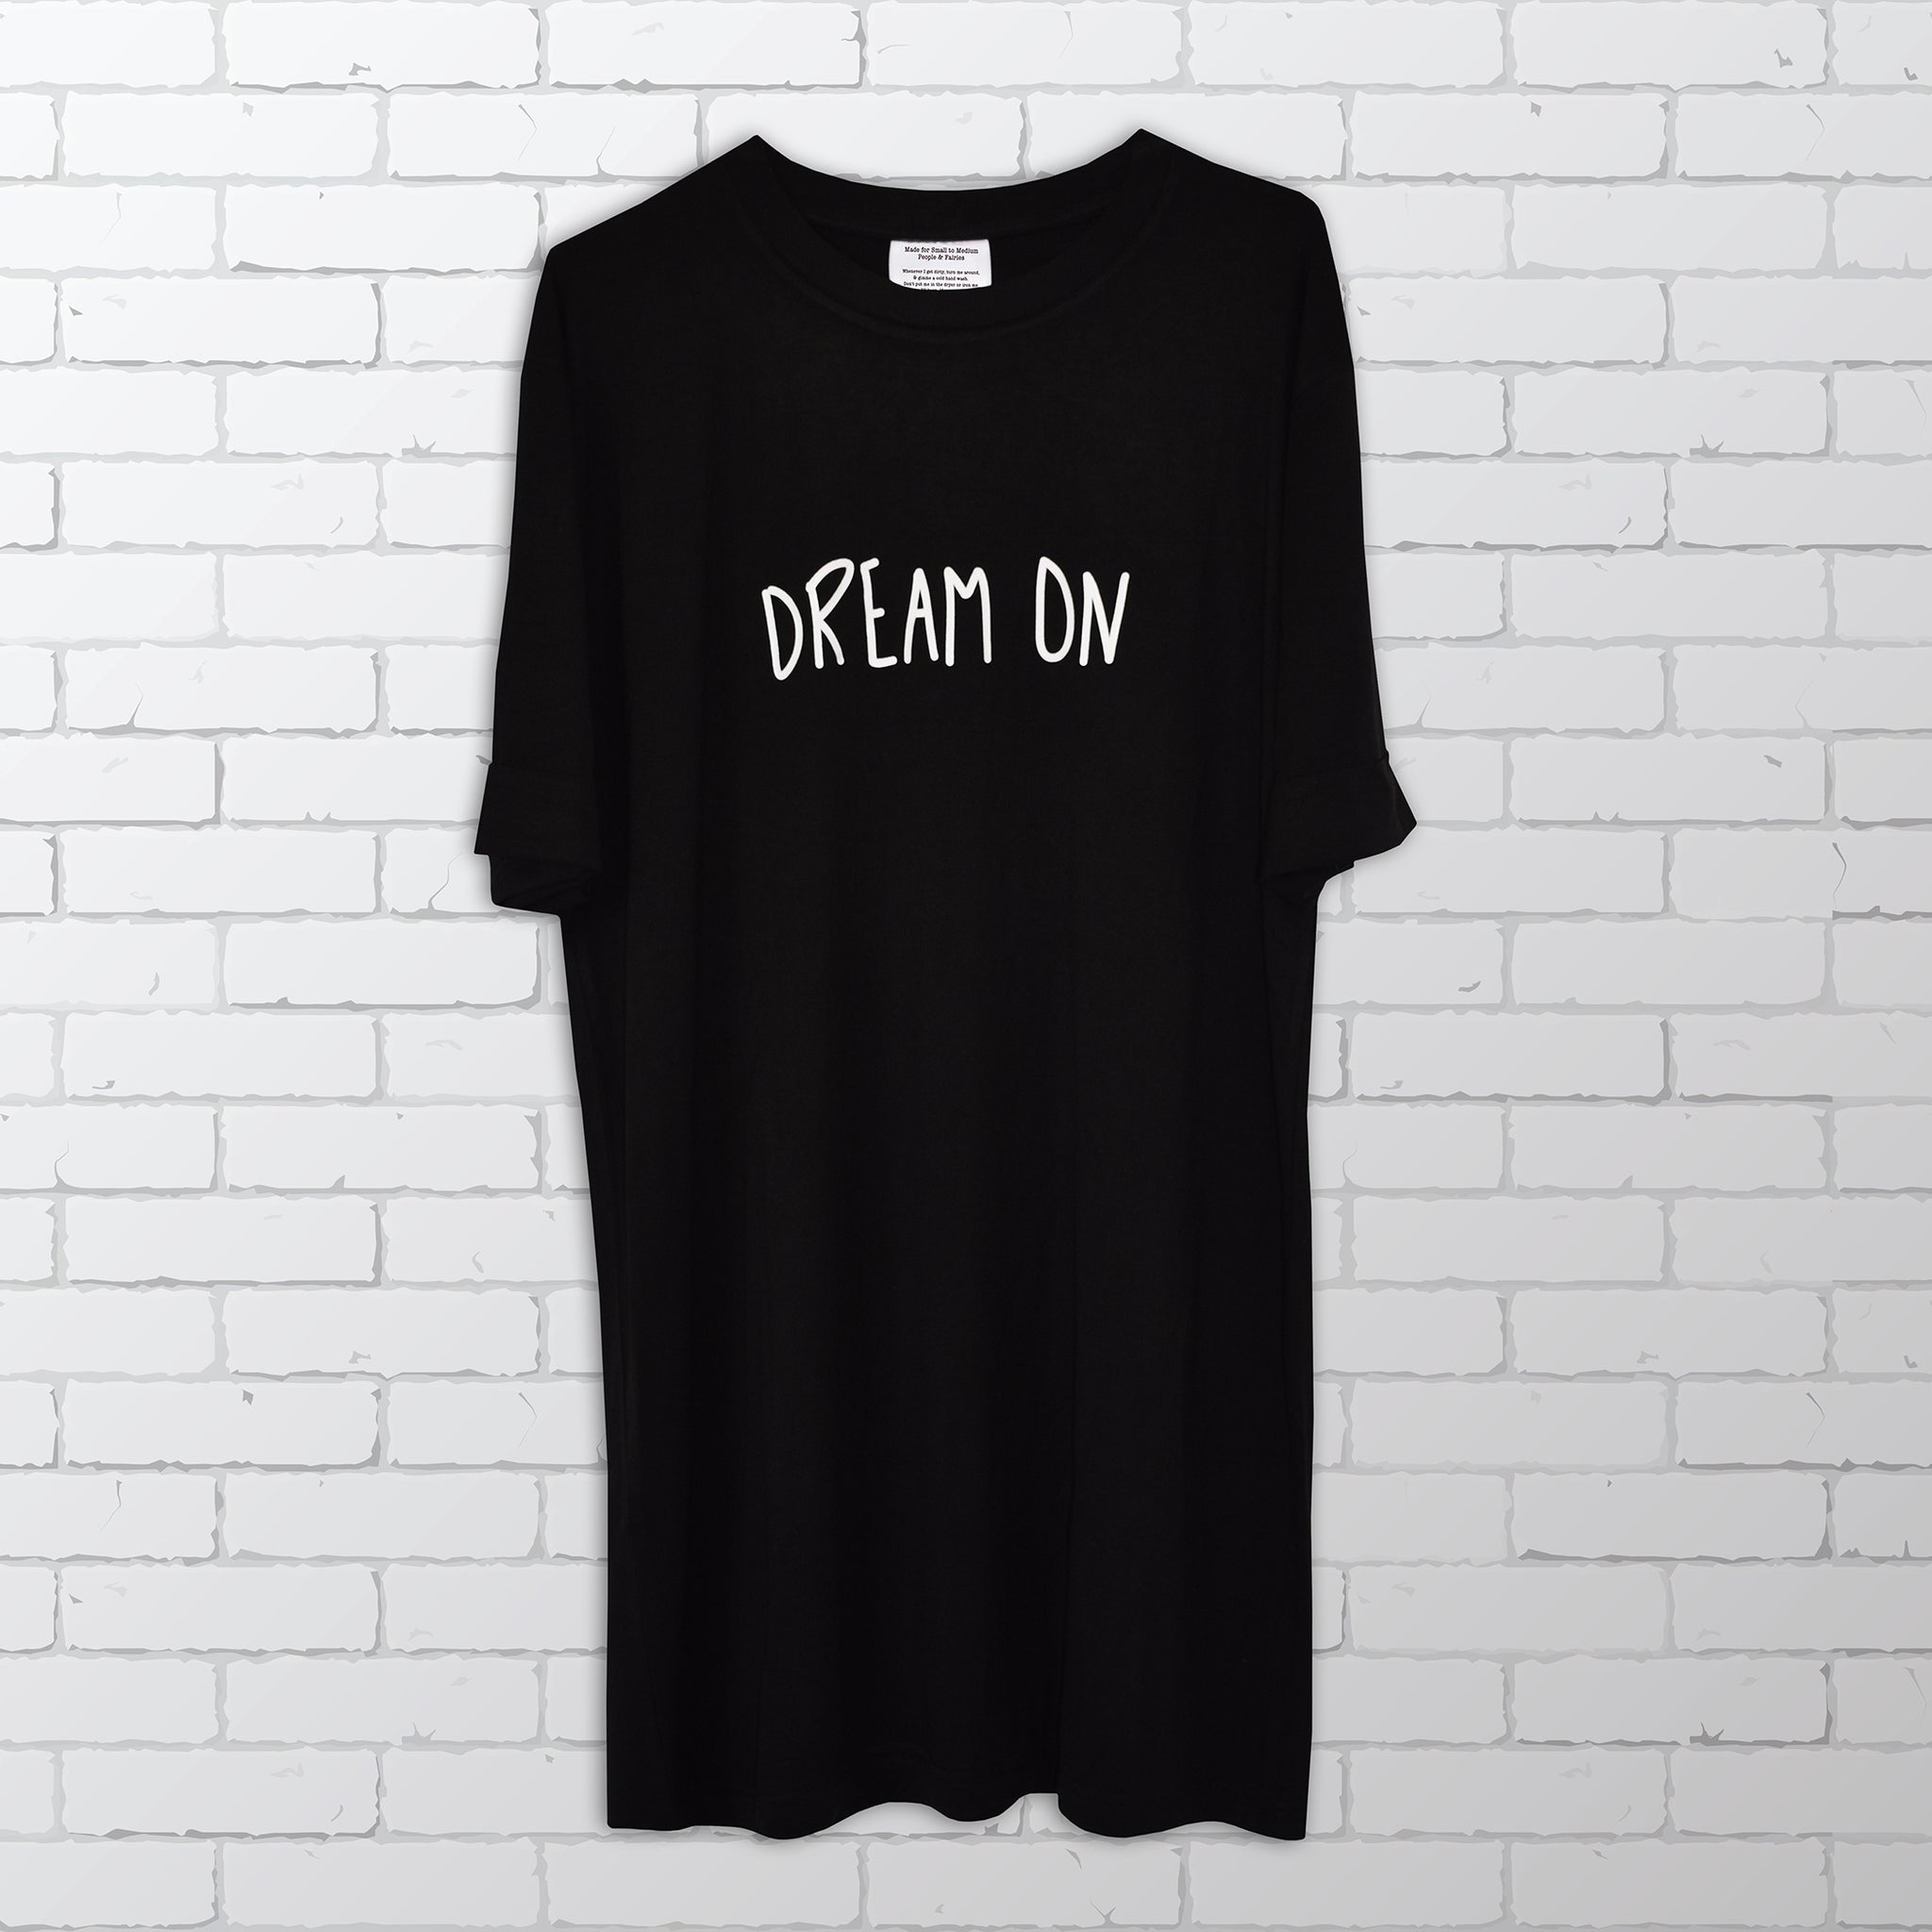 Dream On Bamboo T-shirt / Dress / Sleepwear - Bold Clothing & Headwear - www.headforbold.com #BeBold